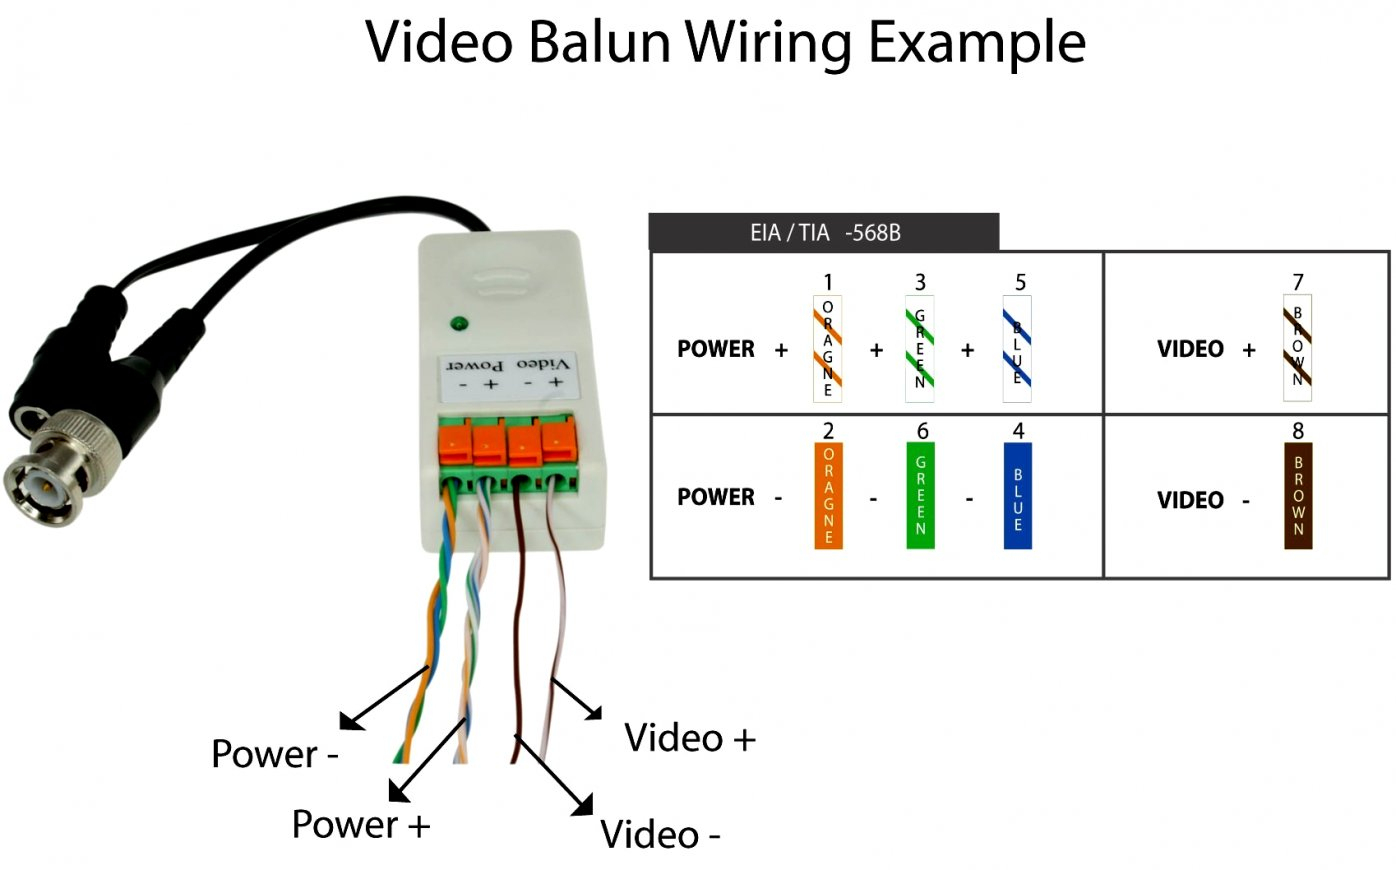 Usb 30 Balun Wiring Diagram | Wiring Diagram - Usb Printer Cable Wiring Diagram